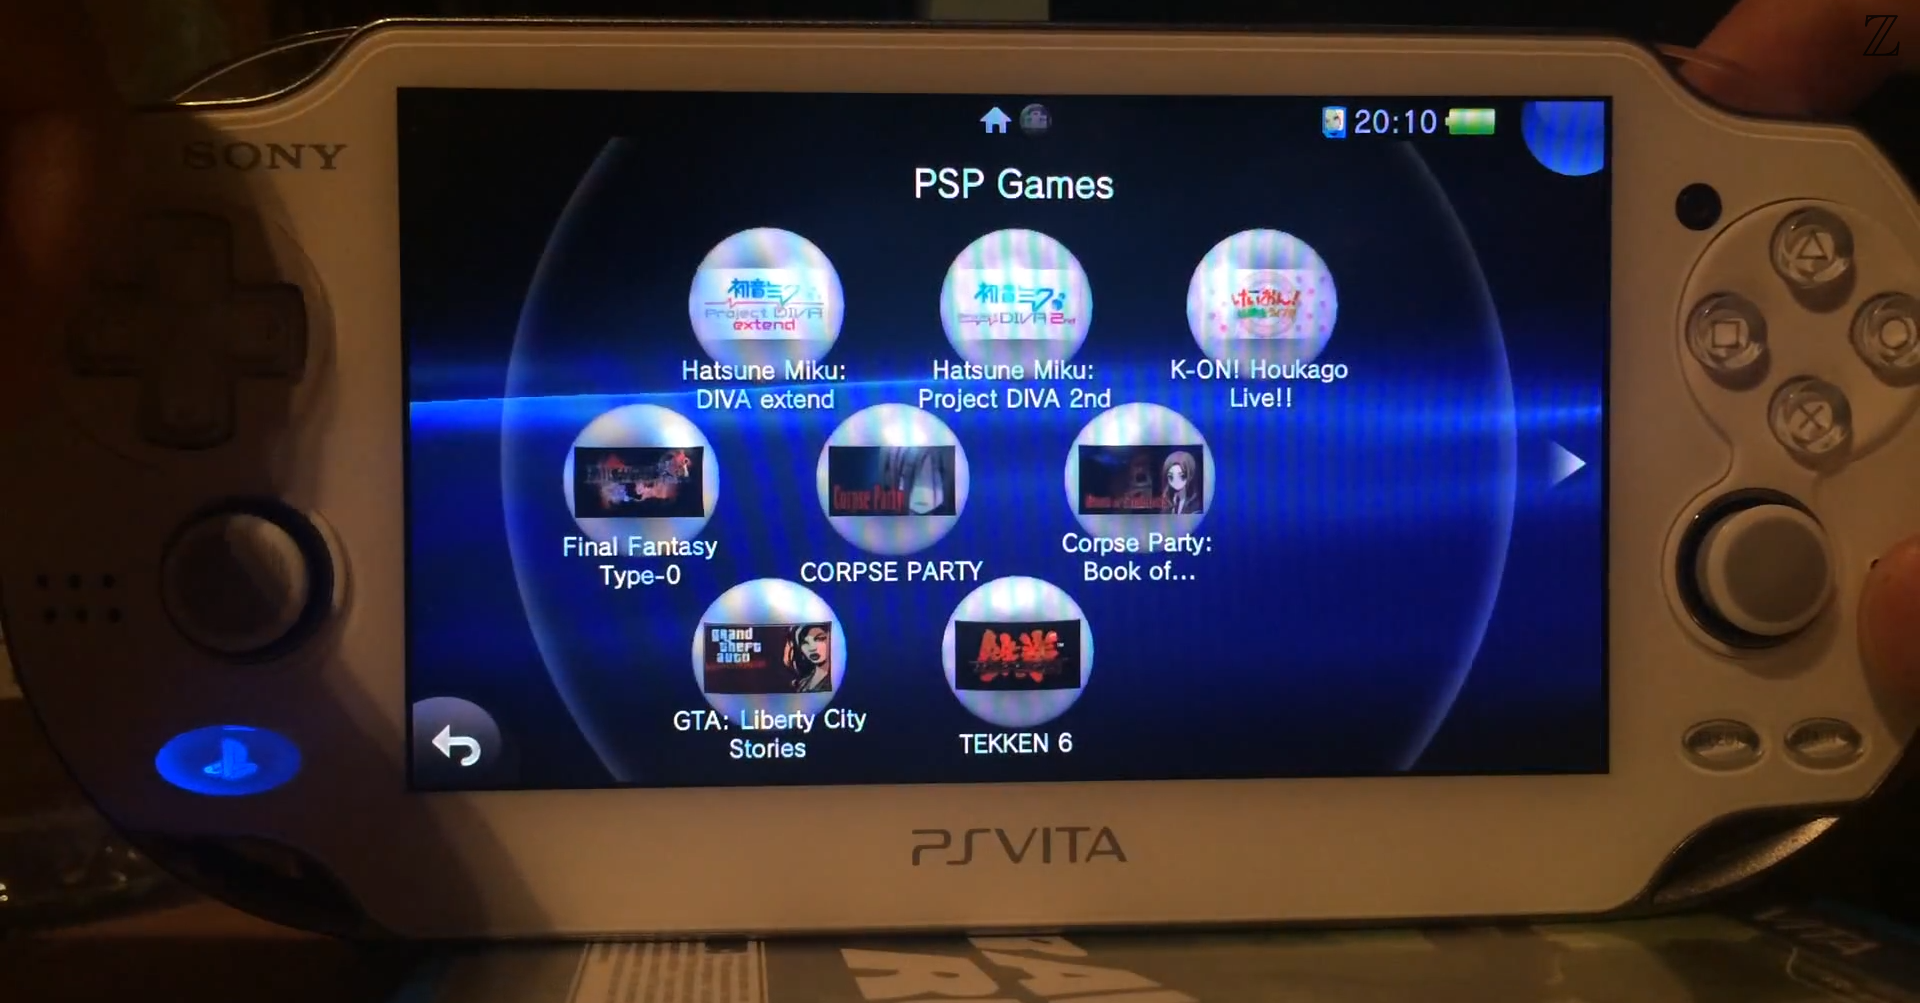 ps vita emulator android 2014